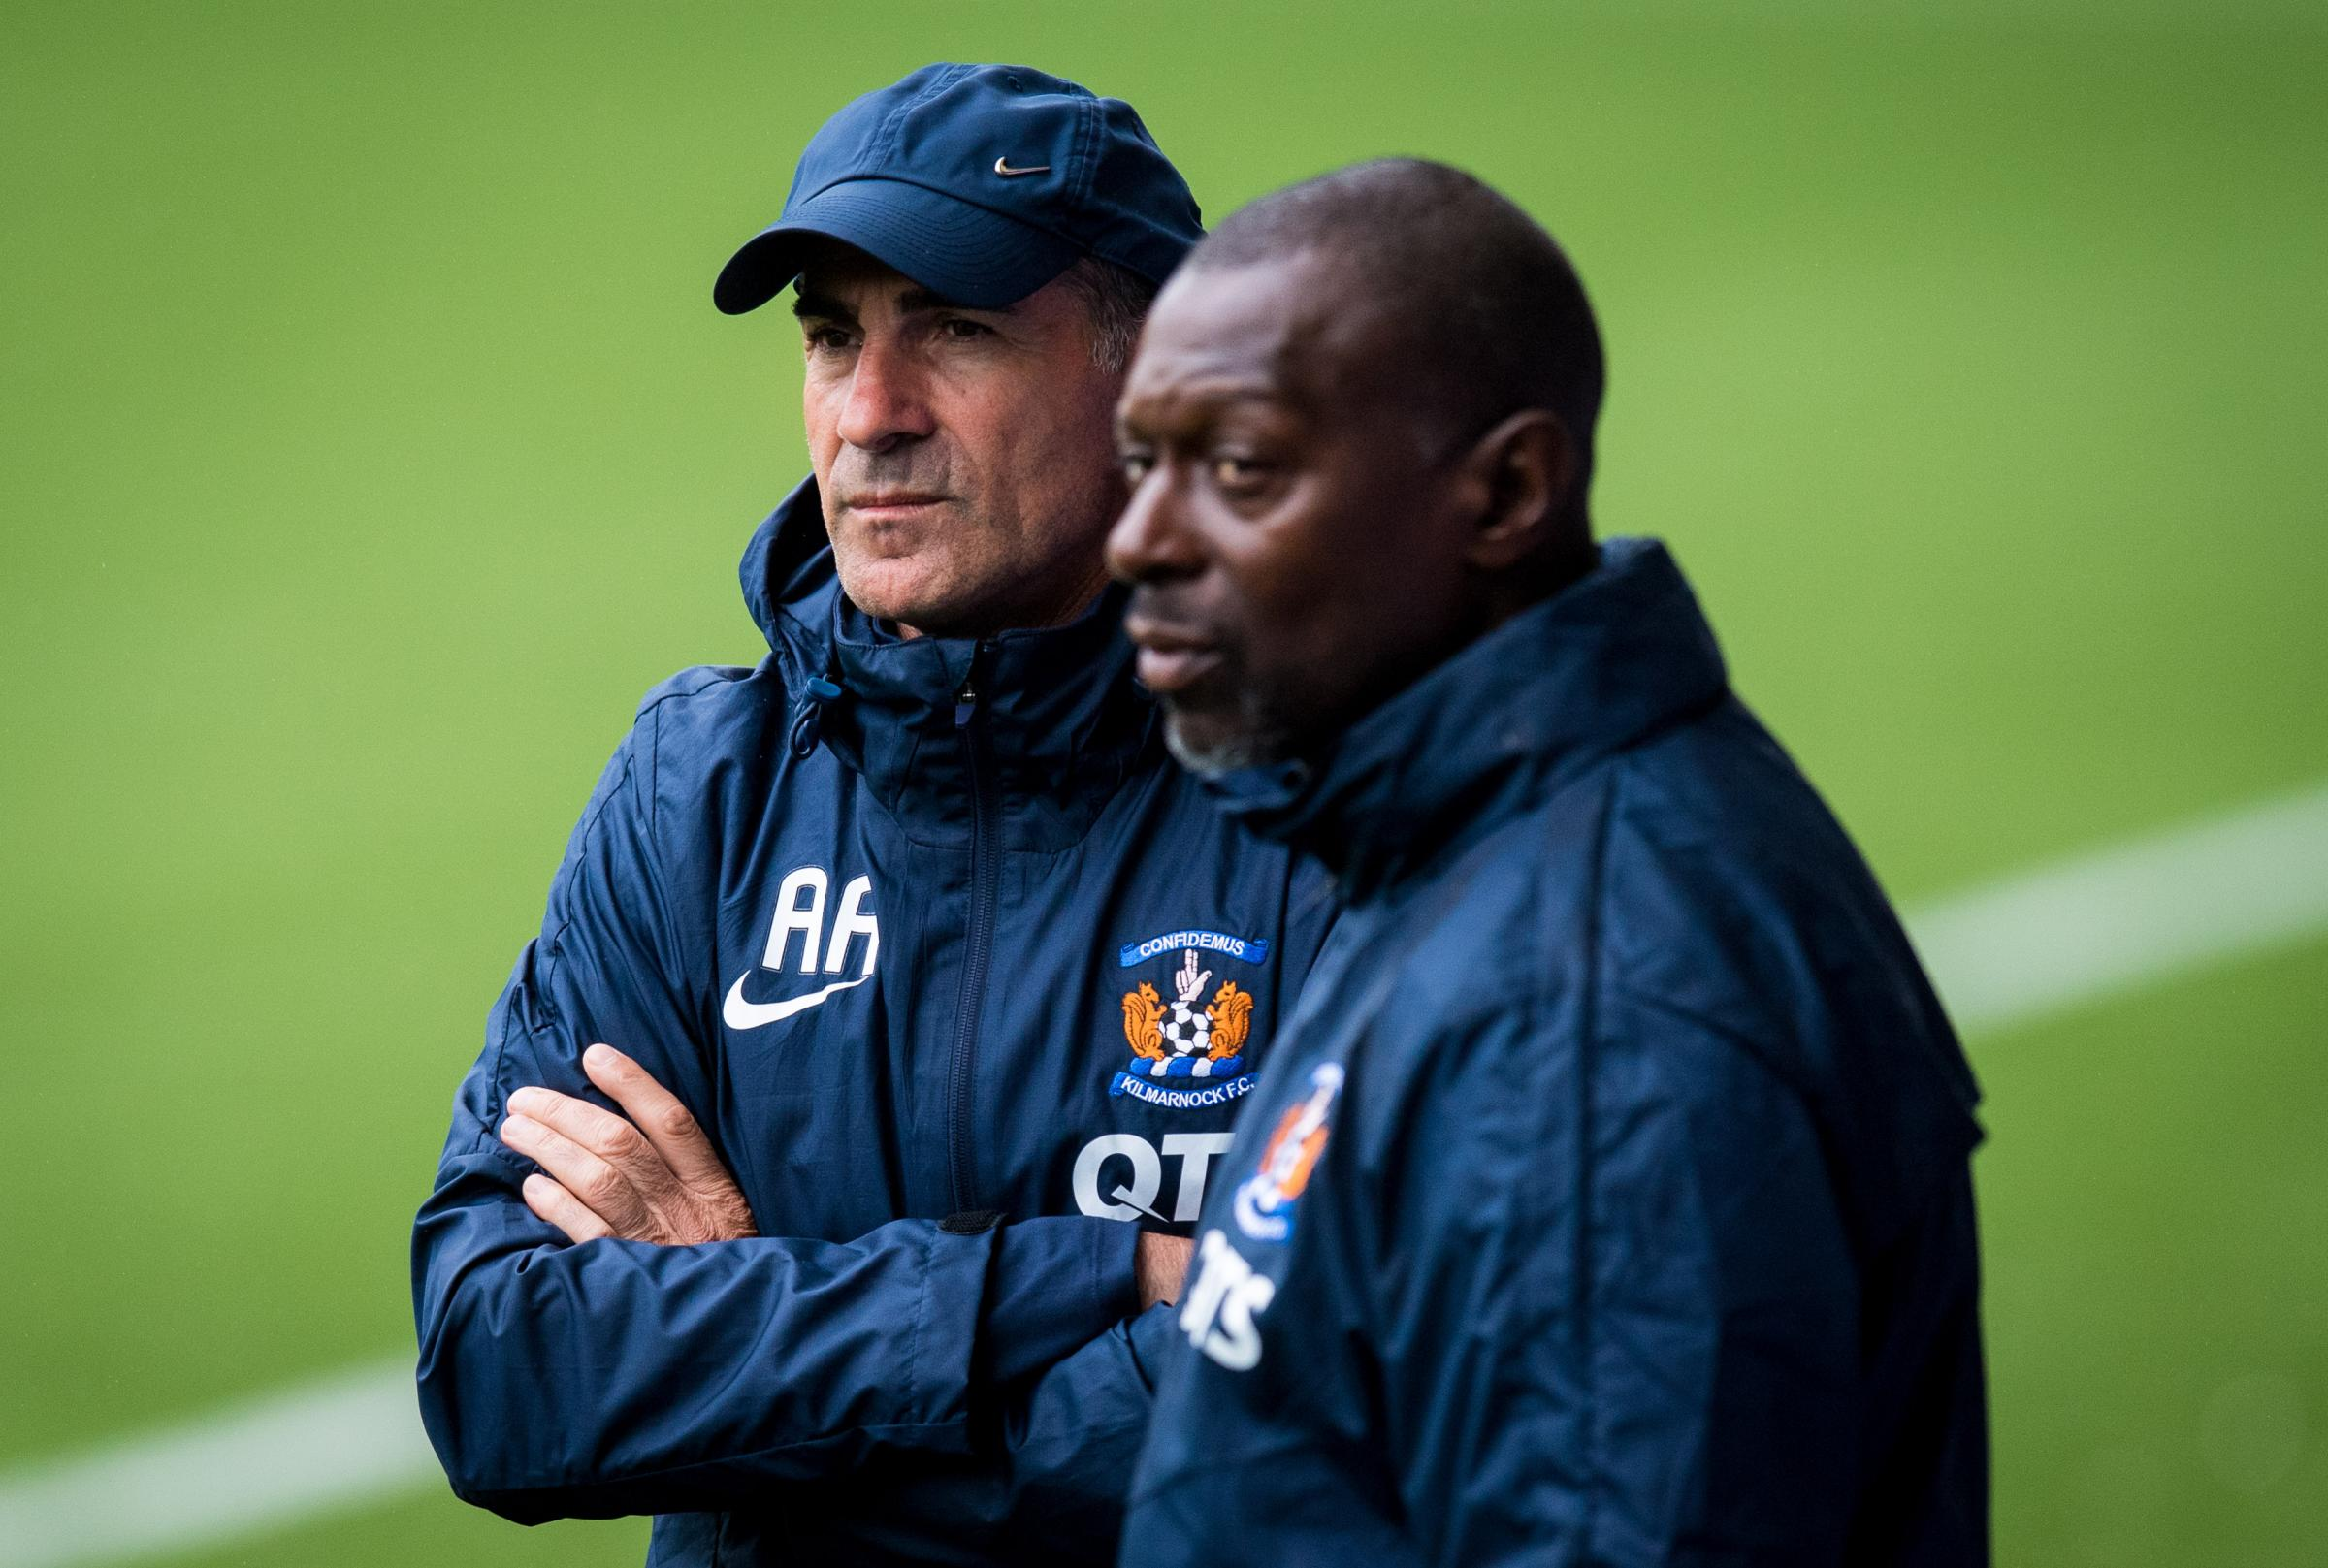 Kilmarnock boss Angelo Alessio picks up October's Manager of the Month award